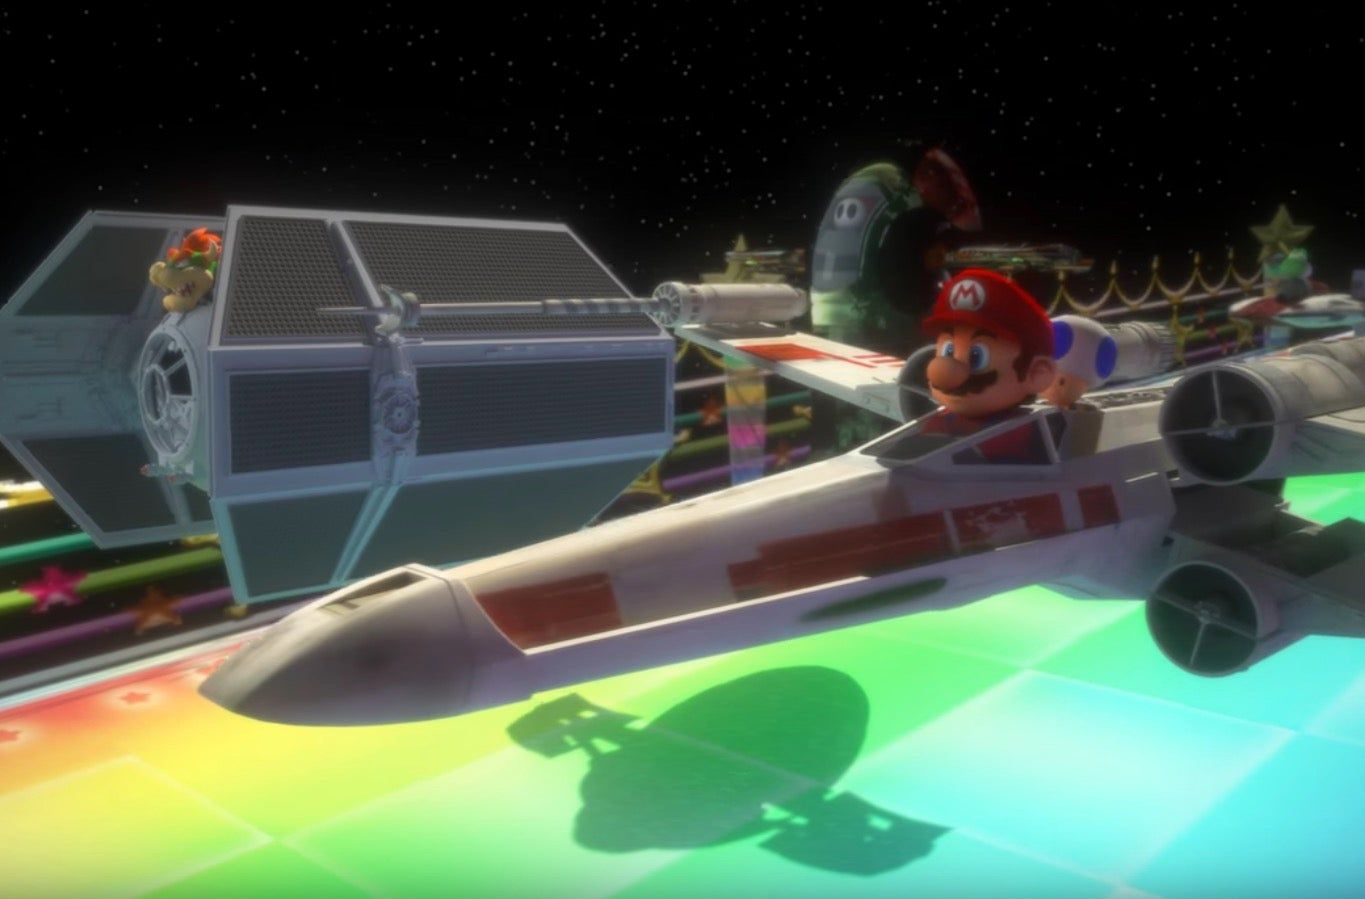 This Mario Kart And Star Wars Trailer Mash-up Is The Game We're All Looking For